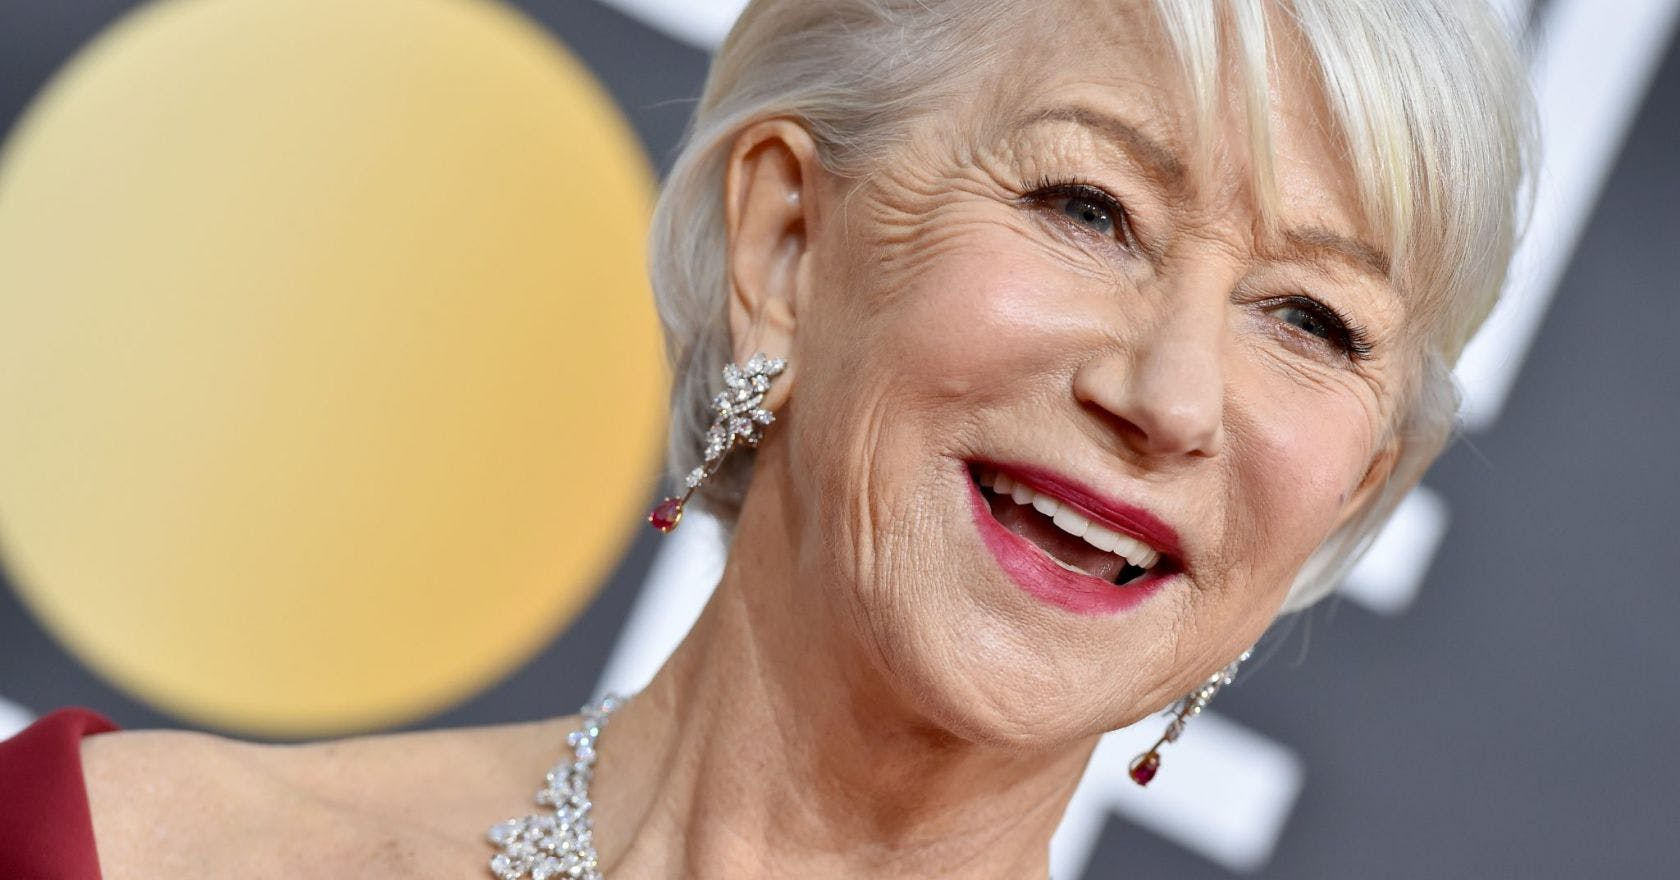 Helen Mirren just hit the nail on the head about the treatment of Meghan Markle